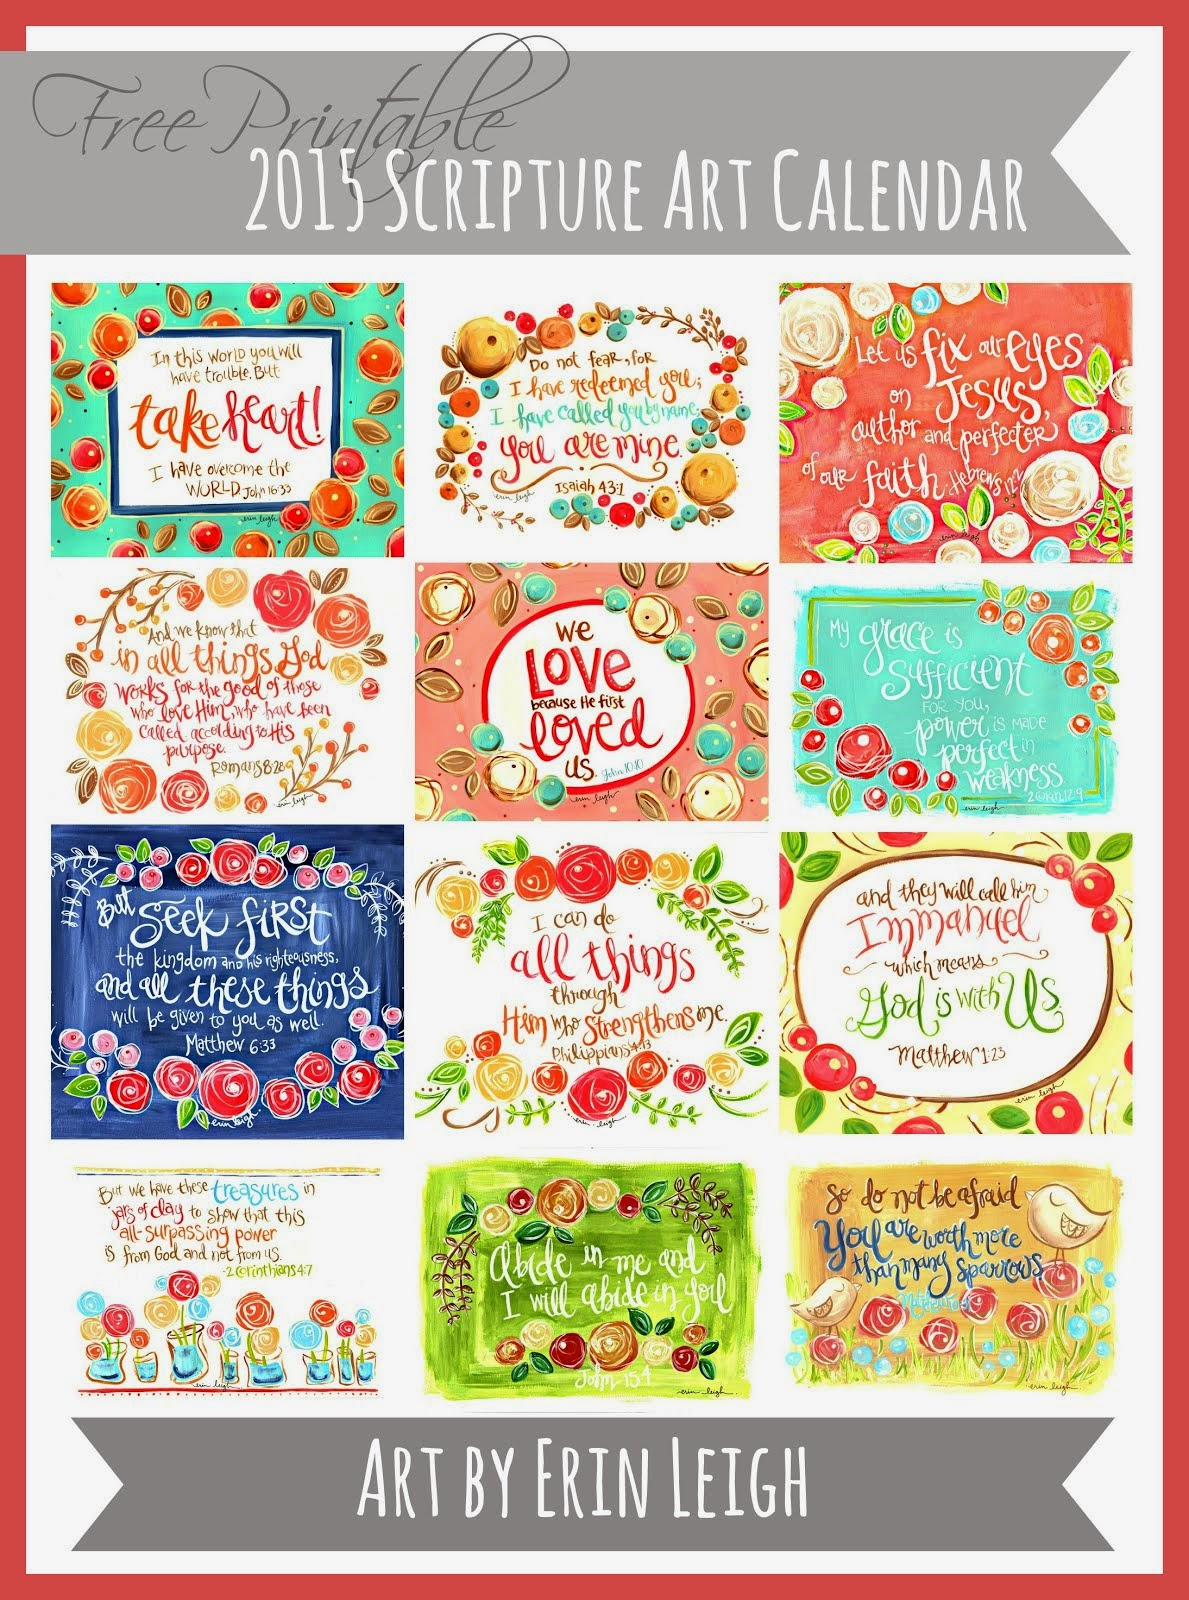 Free Printable 2015 Scripture Art Calendar